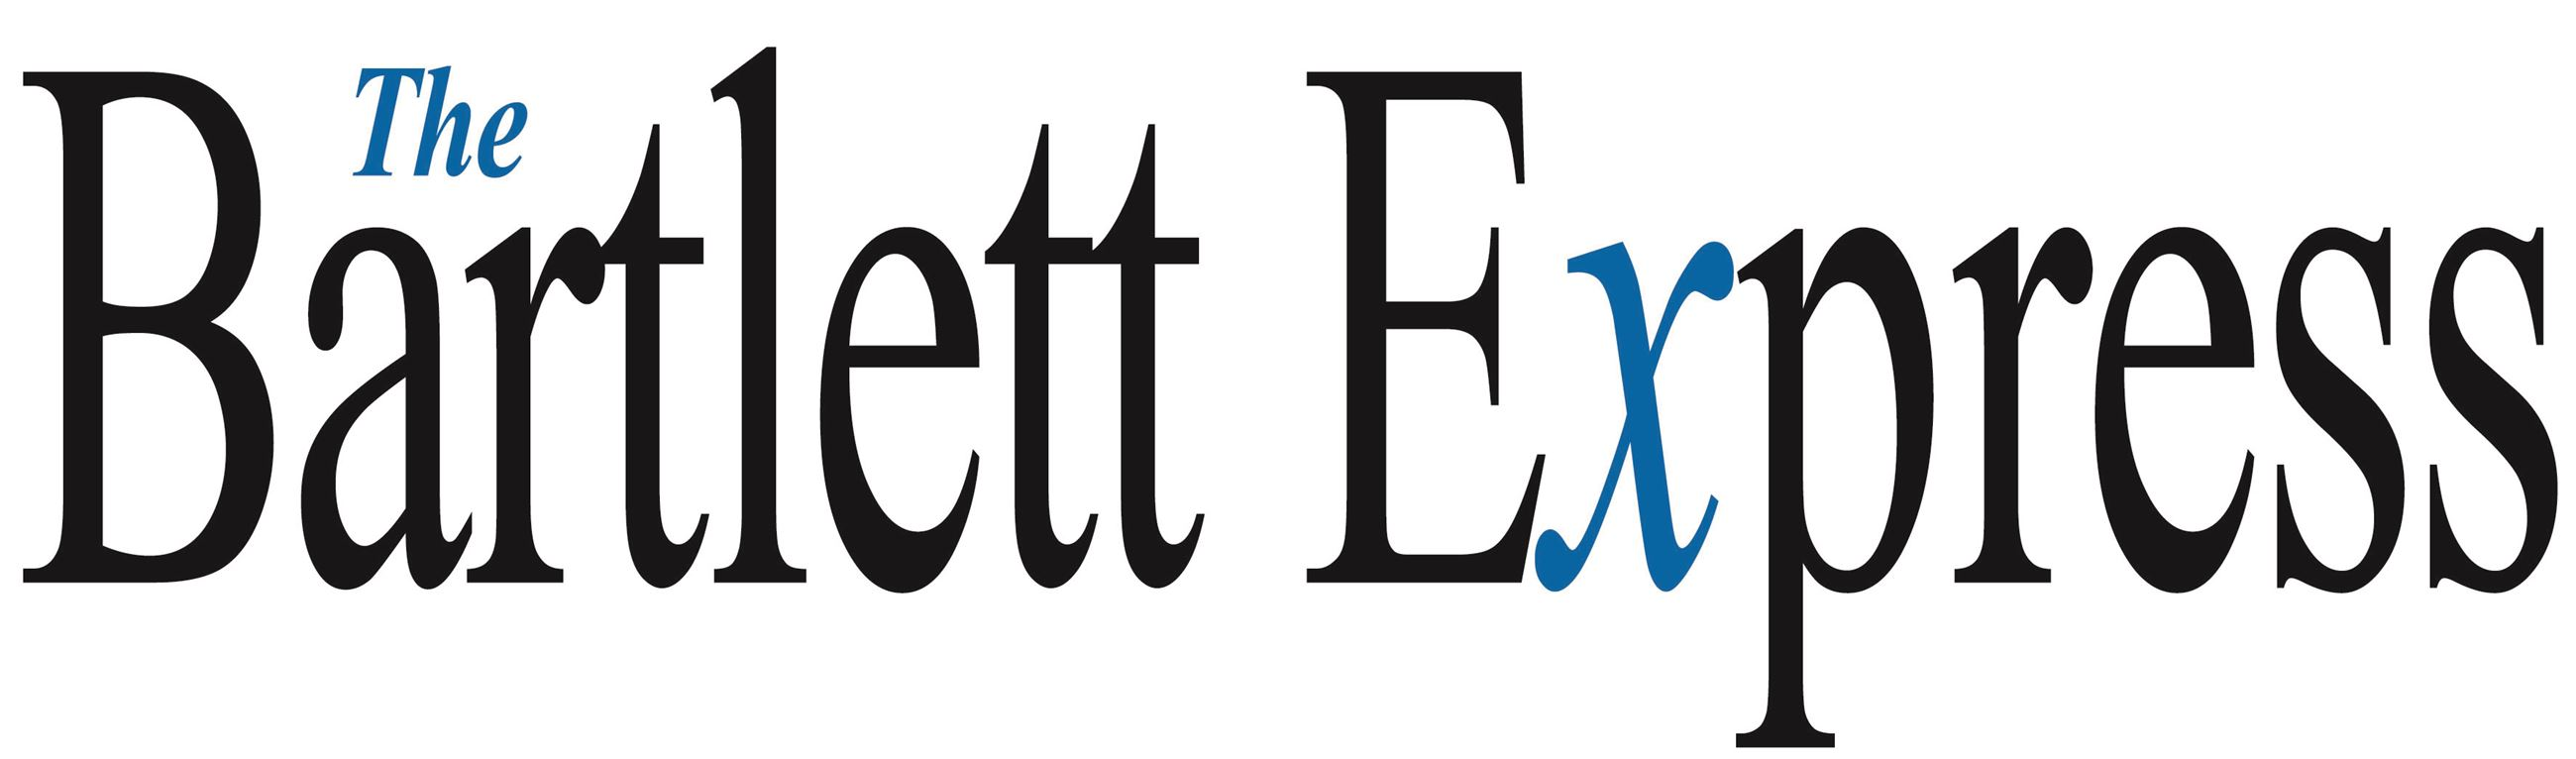 bartlett express